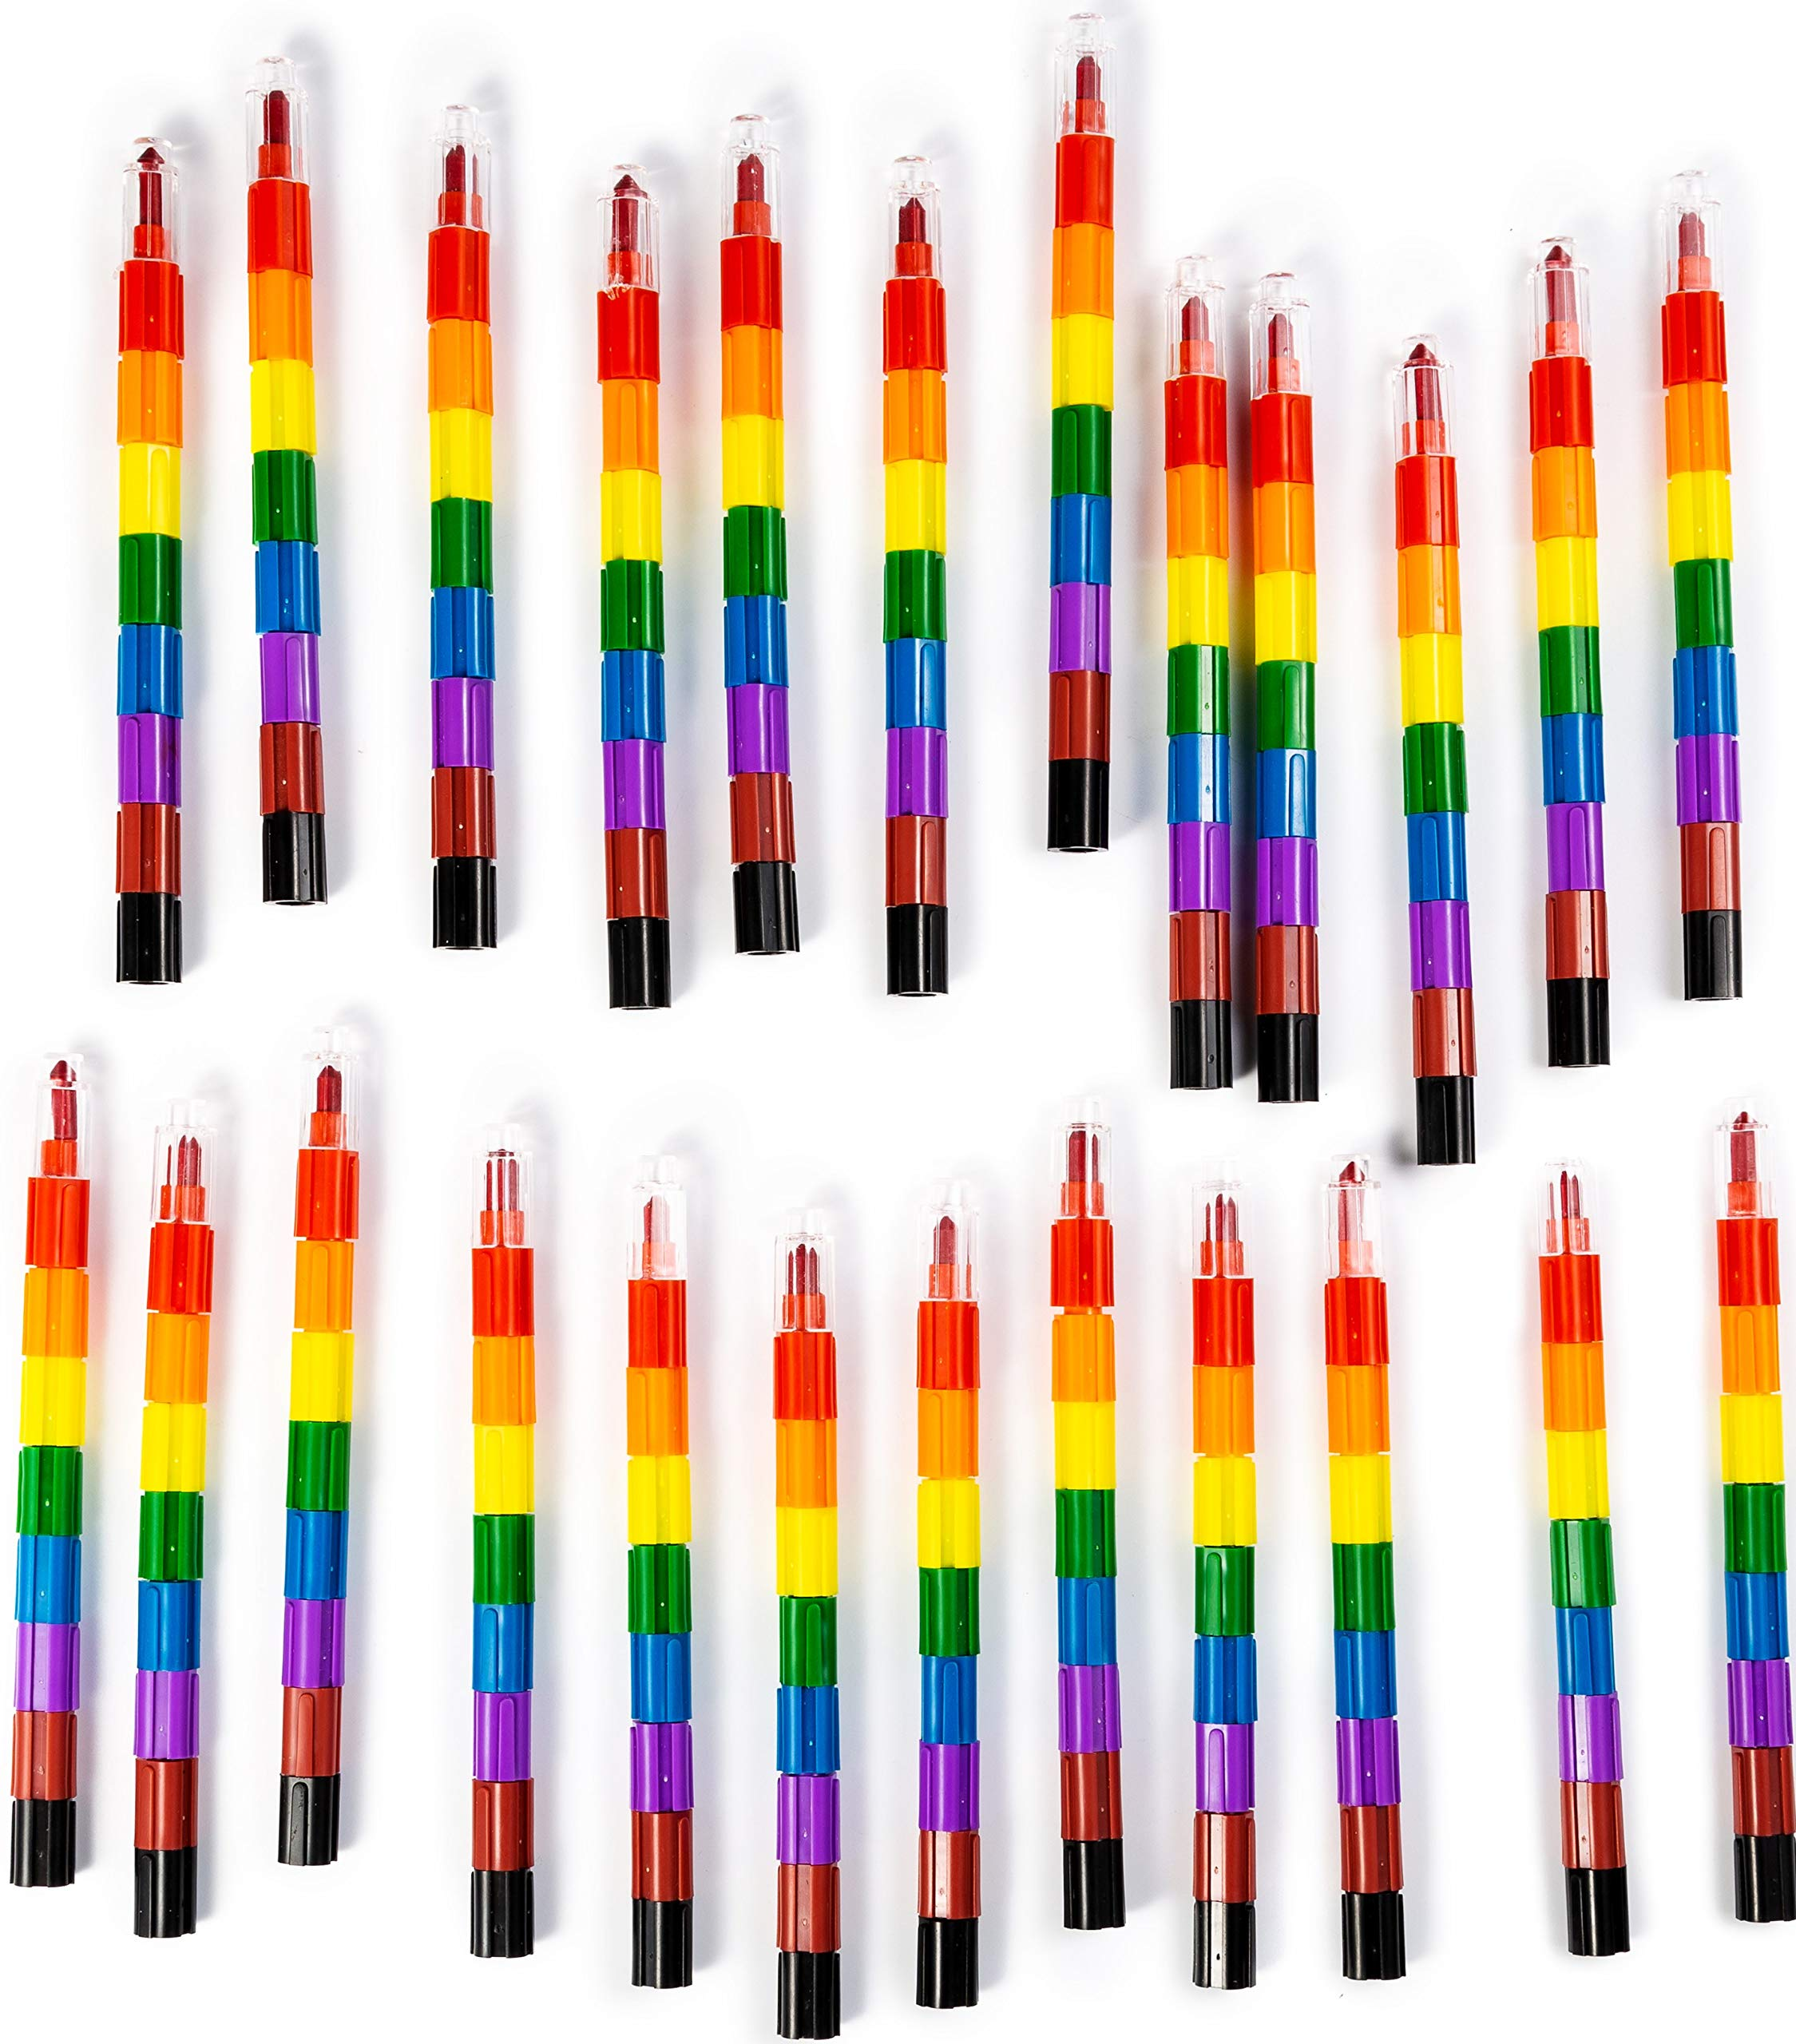 BleuZoo Stacking Buildable 192 Crayons 8 Rainbow Colors - Connect & Build Kids Preschool Art Toys Party Favors Goodie Bags (24 Crayon Sticks)